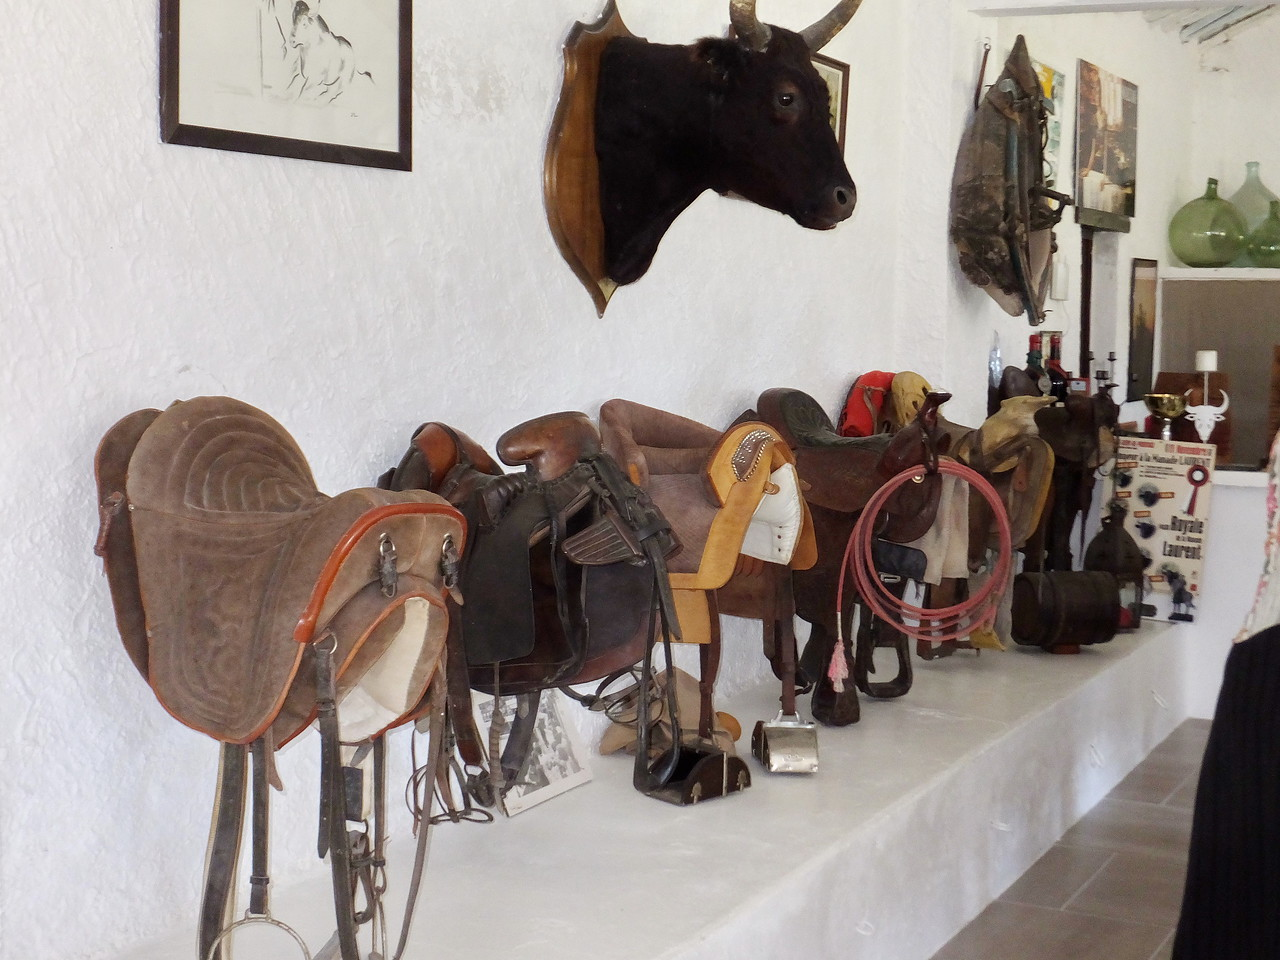 The owner has a collection of saddles, old and new, from all over the world. All are in mint condition